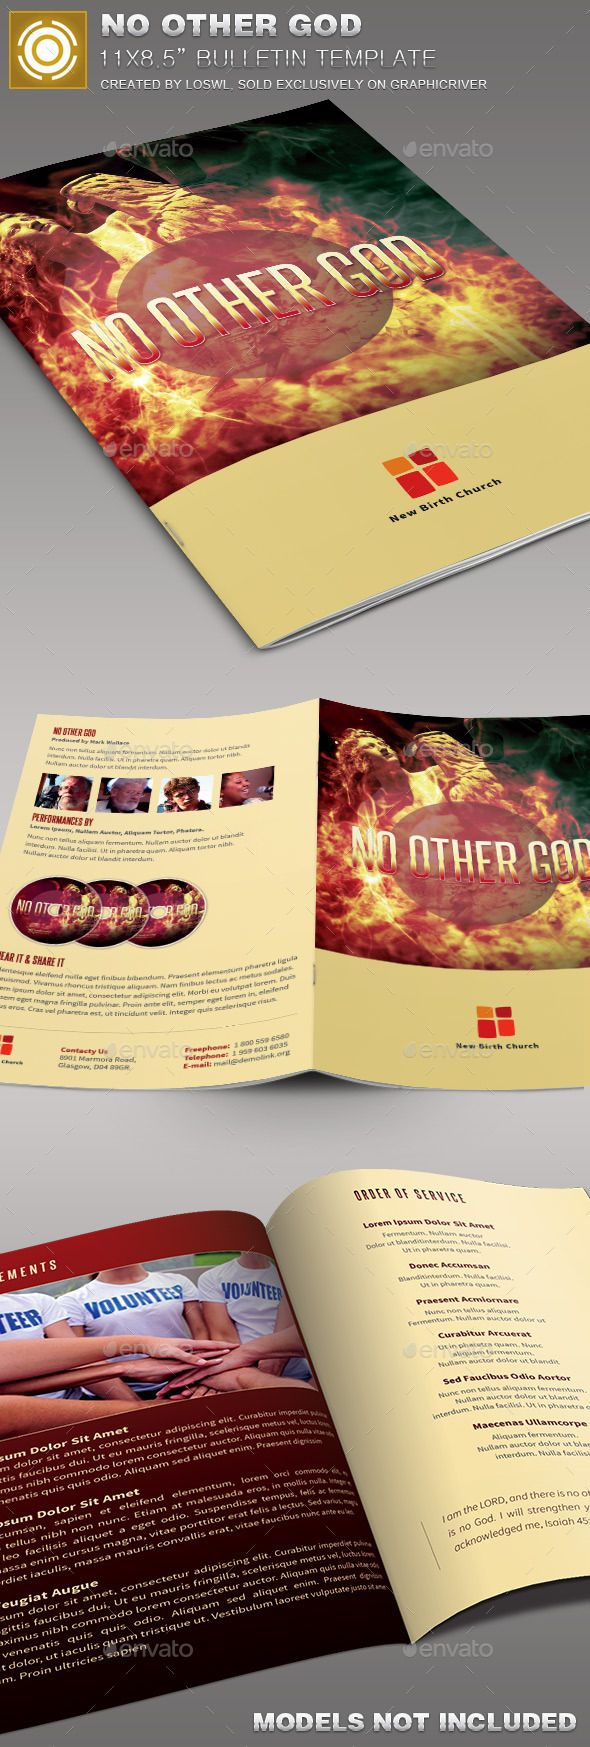 1000 ideas about church bulletins on pinterest church for Weekly bulletin template